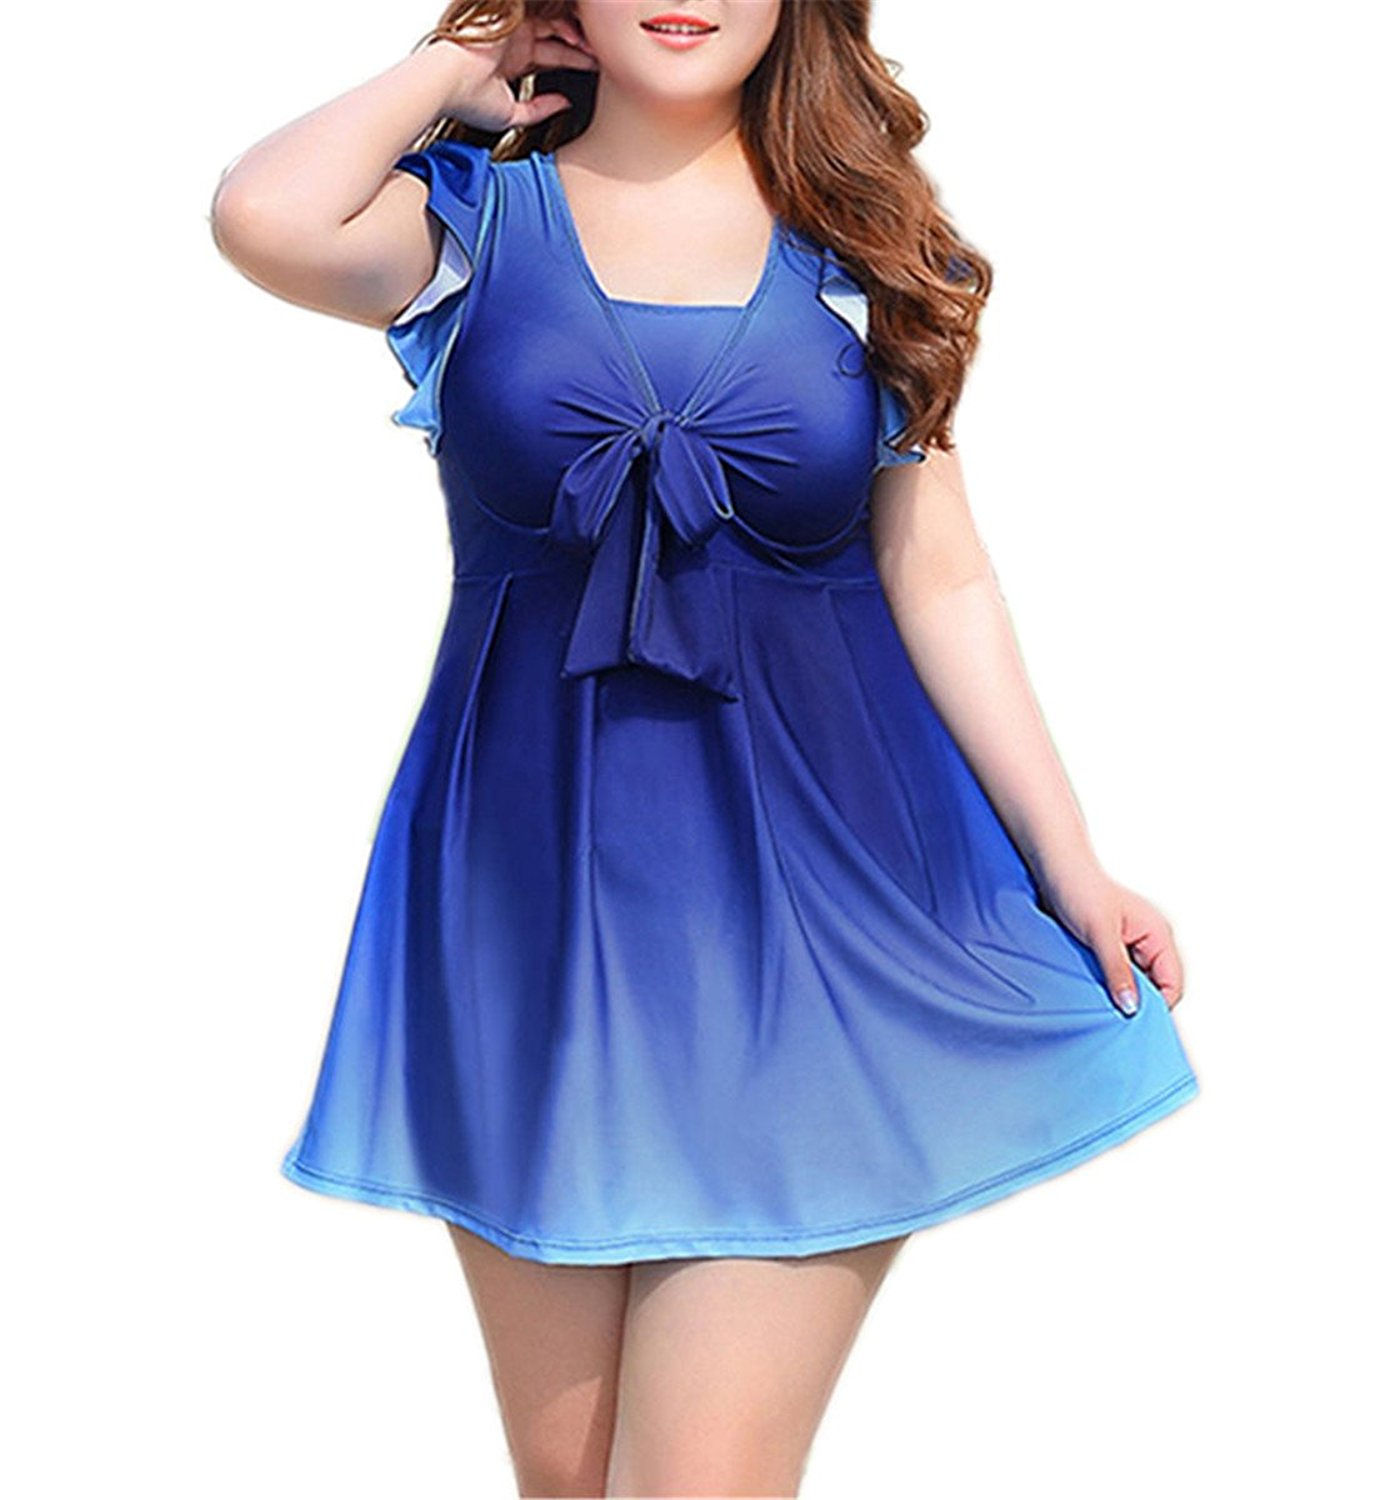 45629803df Cheap Swimming Suit Dress, find Swimming Suit Dress deals on line at ...